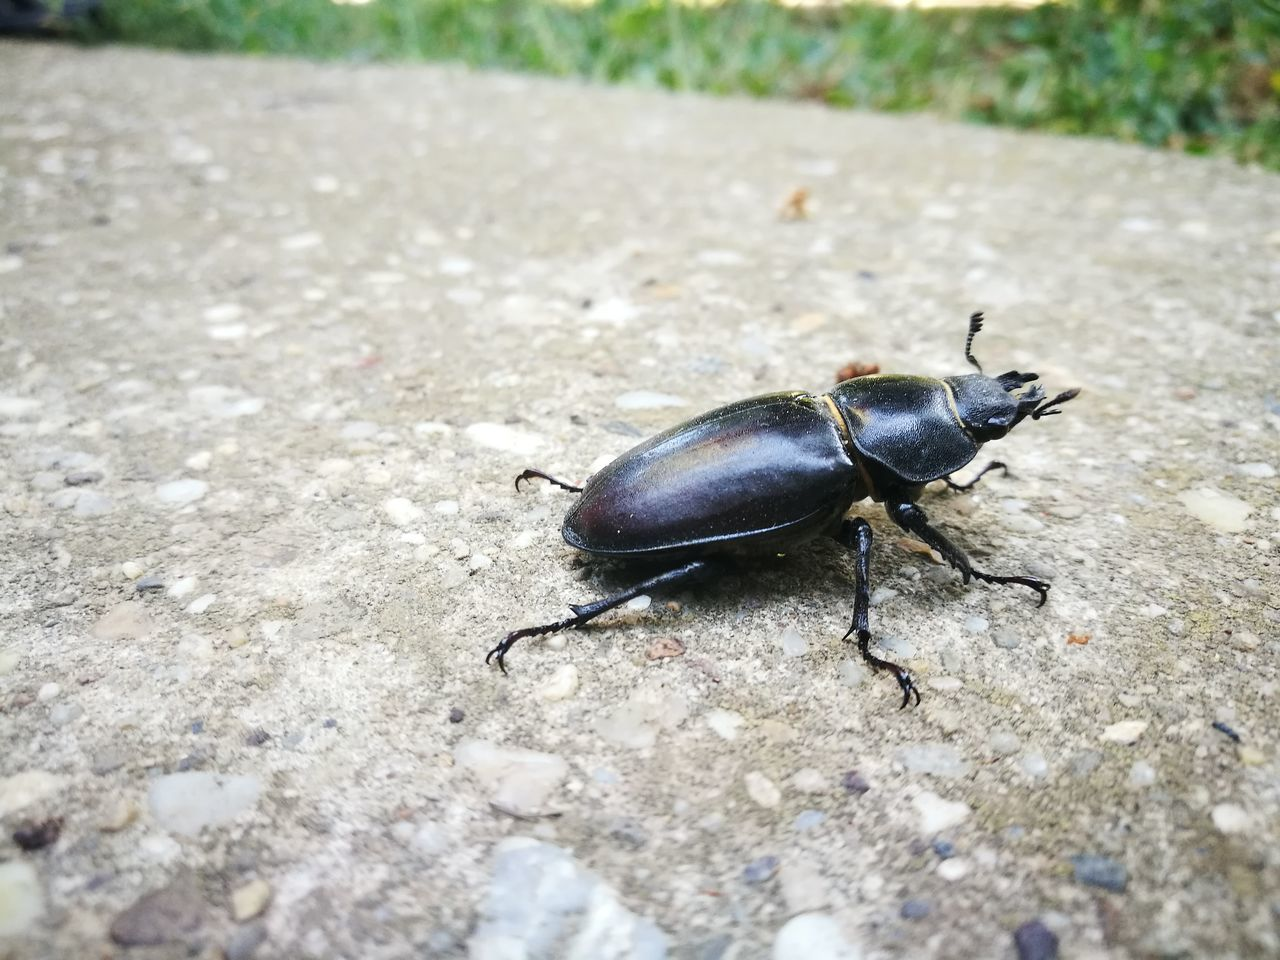 animal themes, one animal, insect, animals in the wild, outdoors, day, close-up, nature, no people